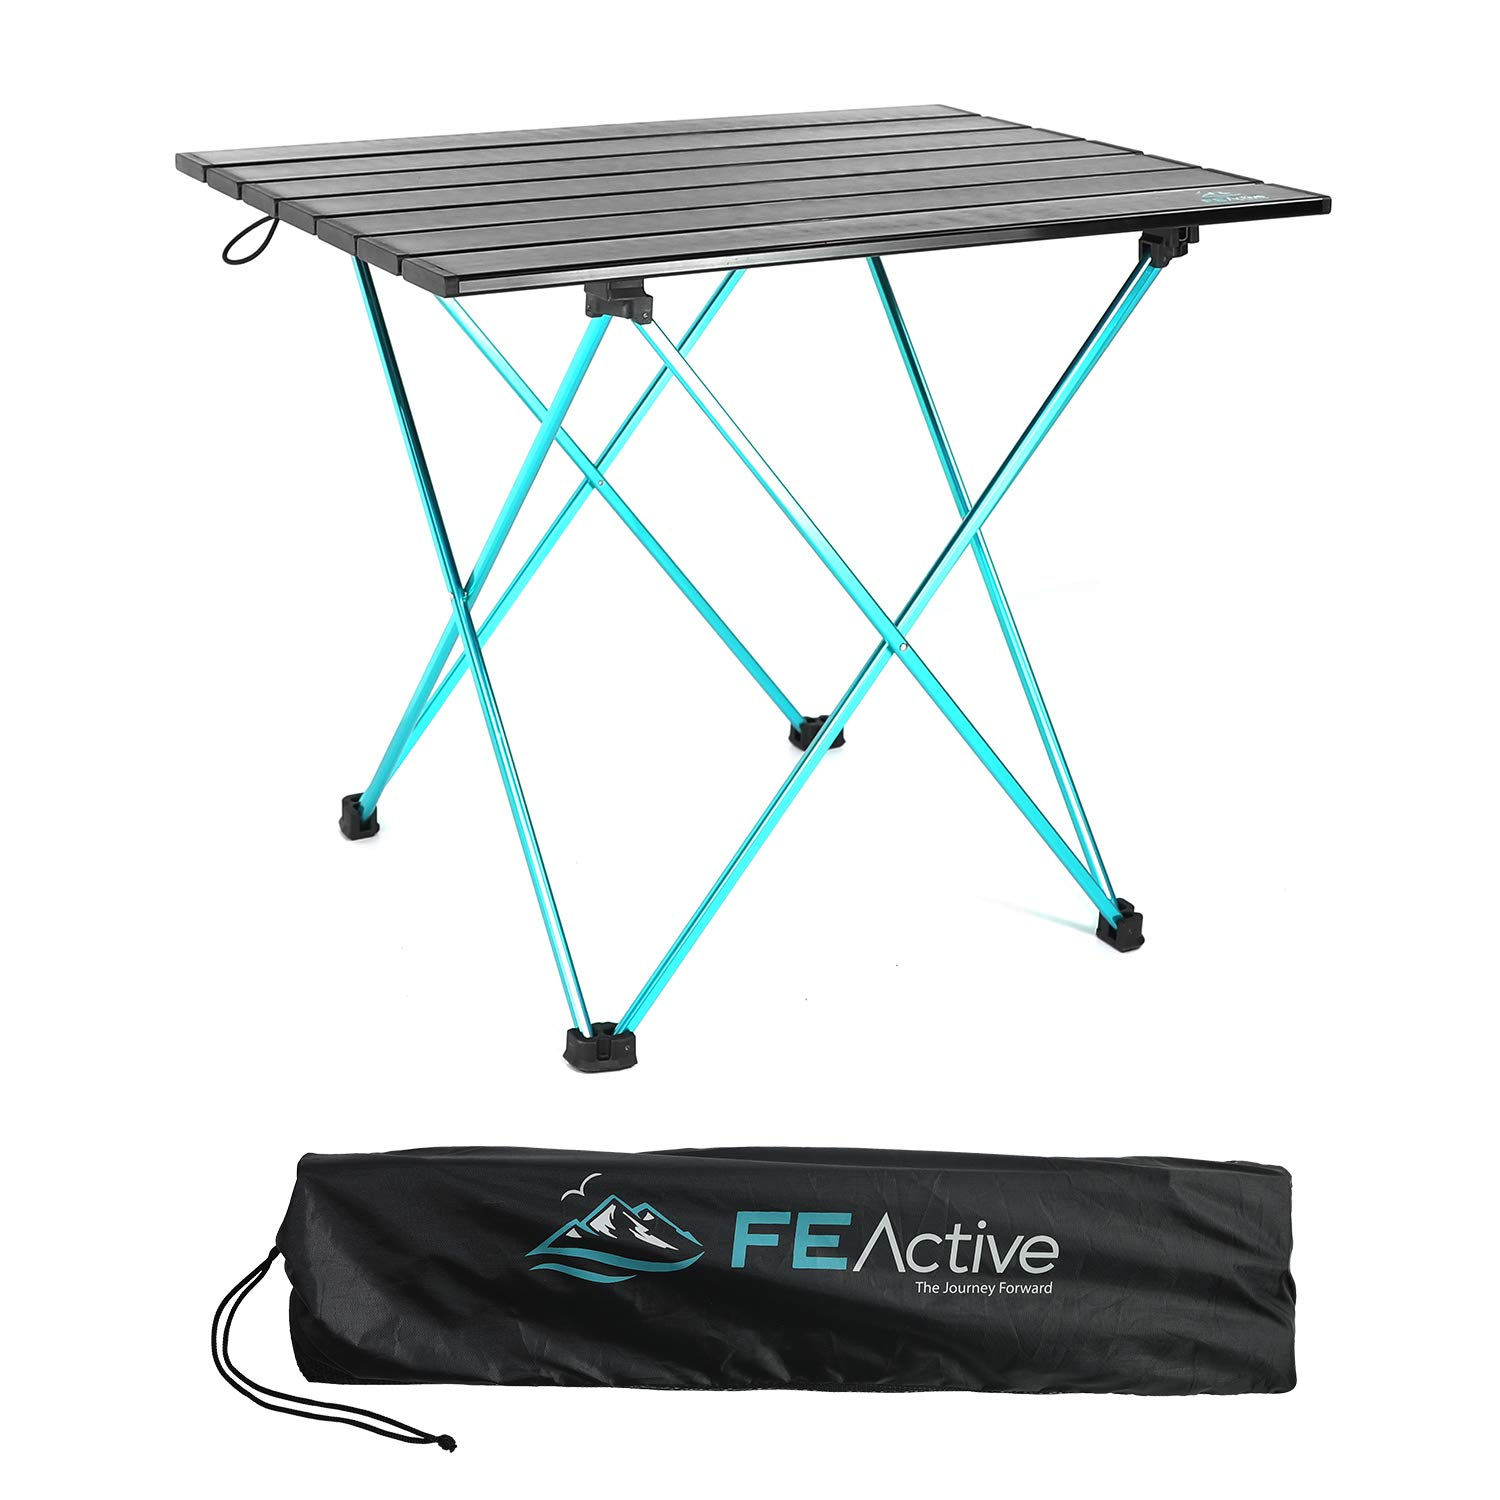 FE Active – Compact Folding Table Built with Full Aluminum Designed as Ultralight Portable Camping Table for Beach, Hiking, Trekking, Backpacking, Camping, Sports Games Designed in California, USA